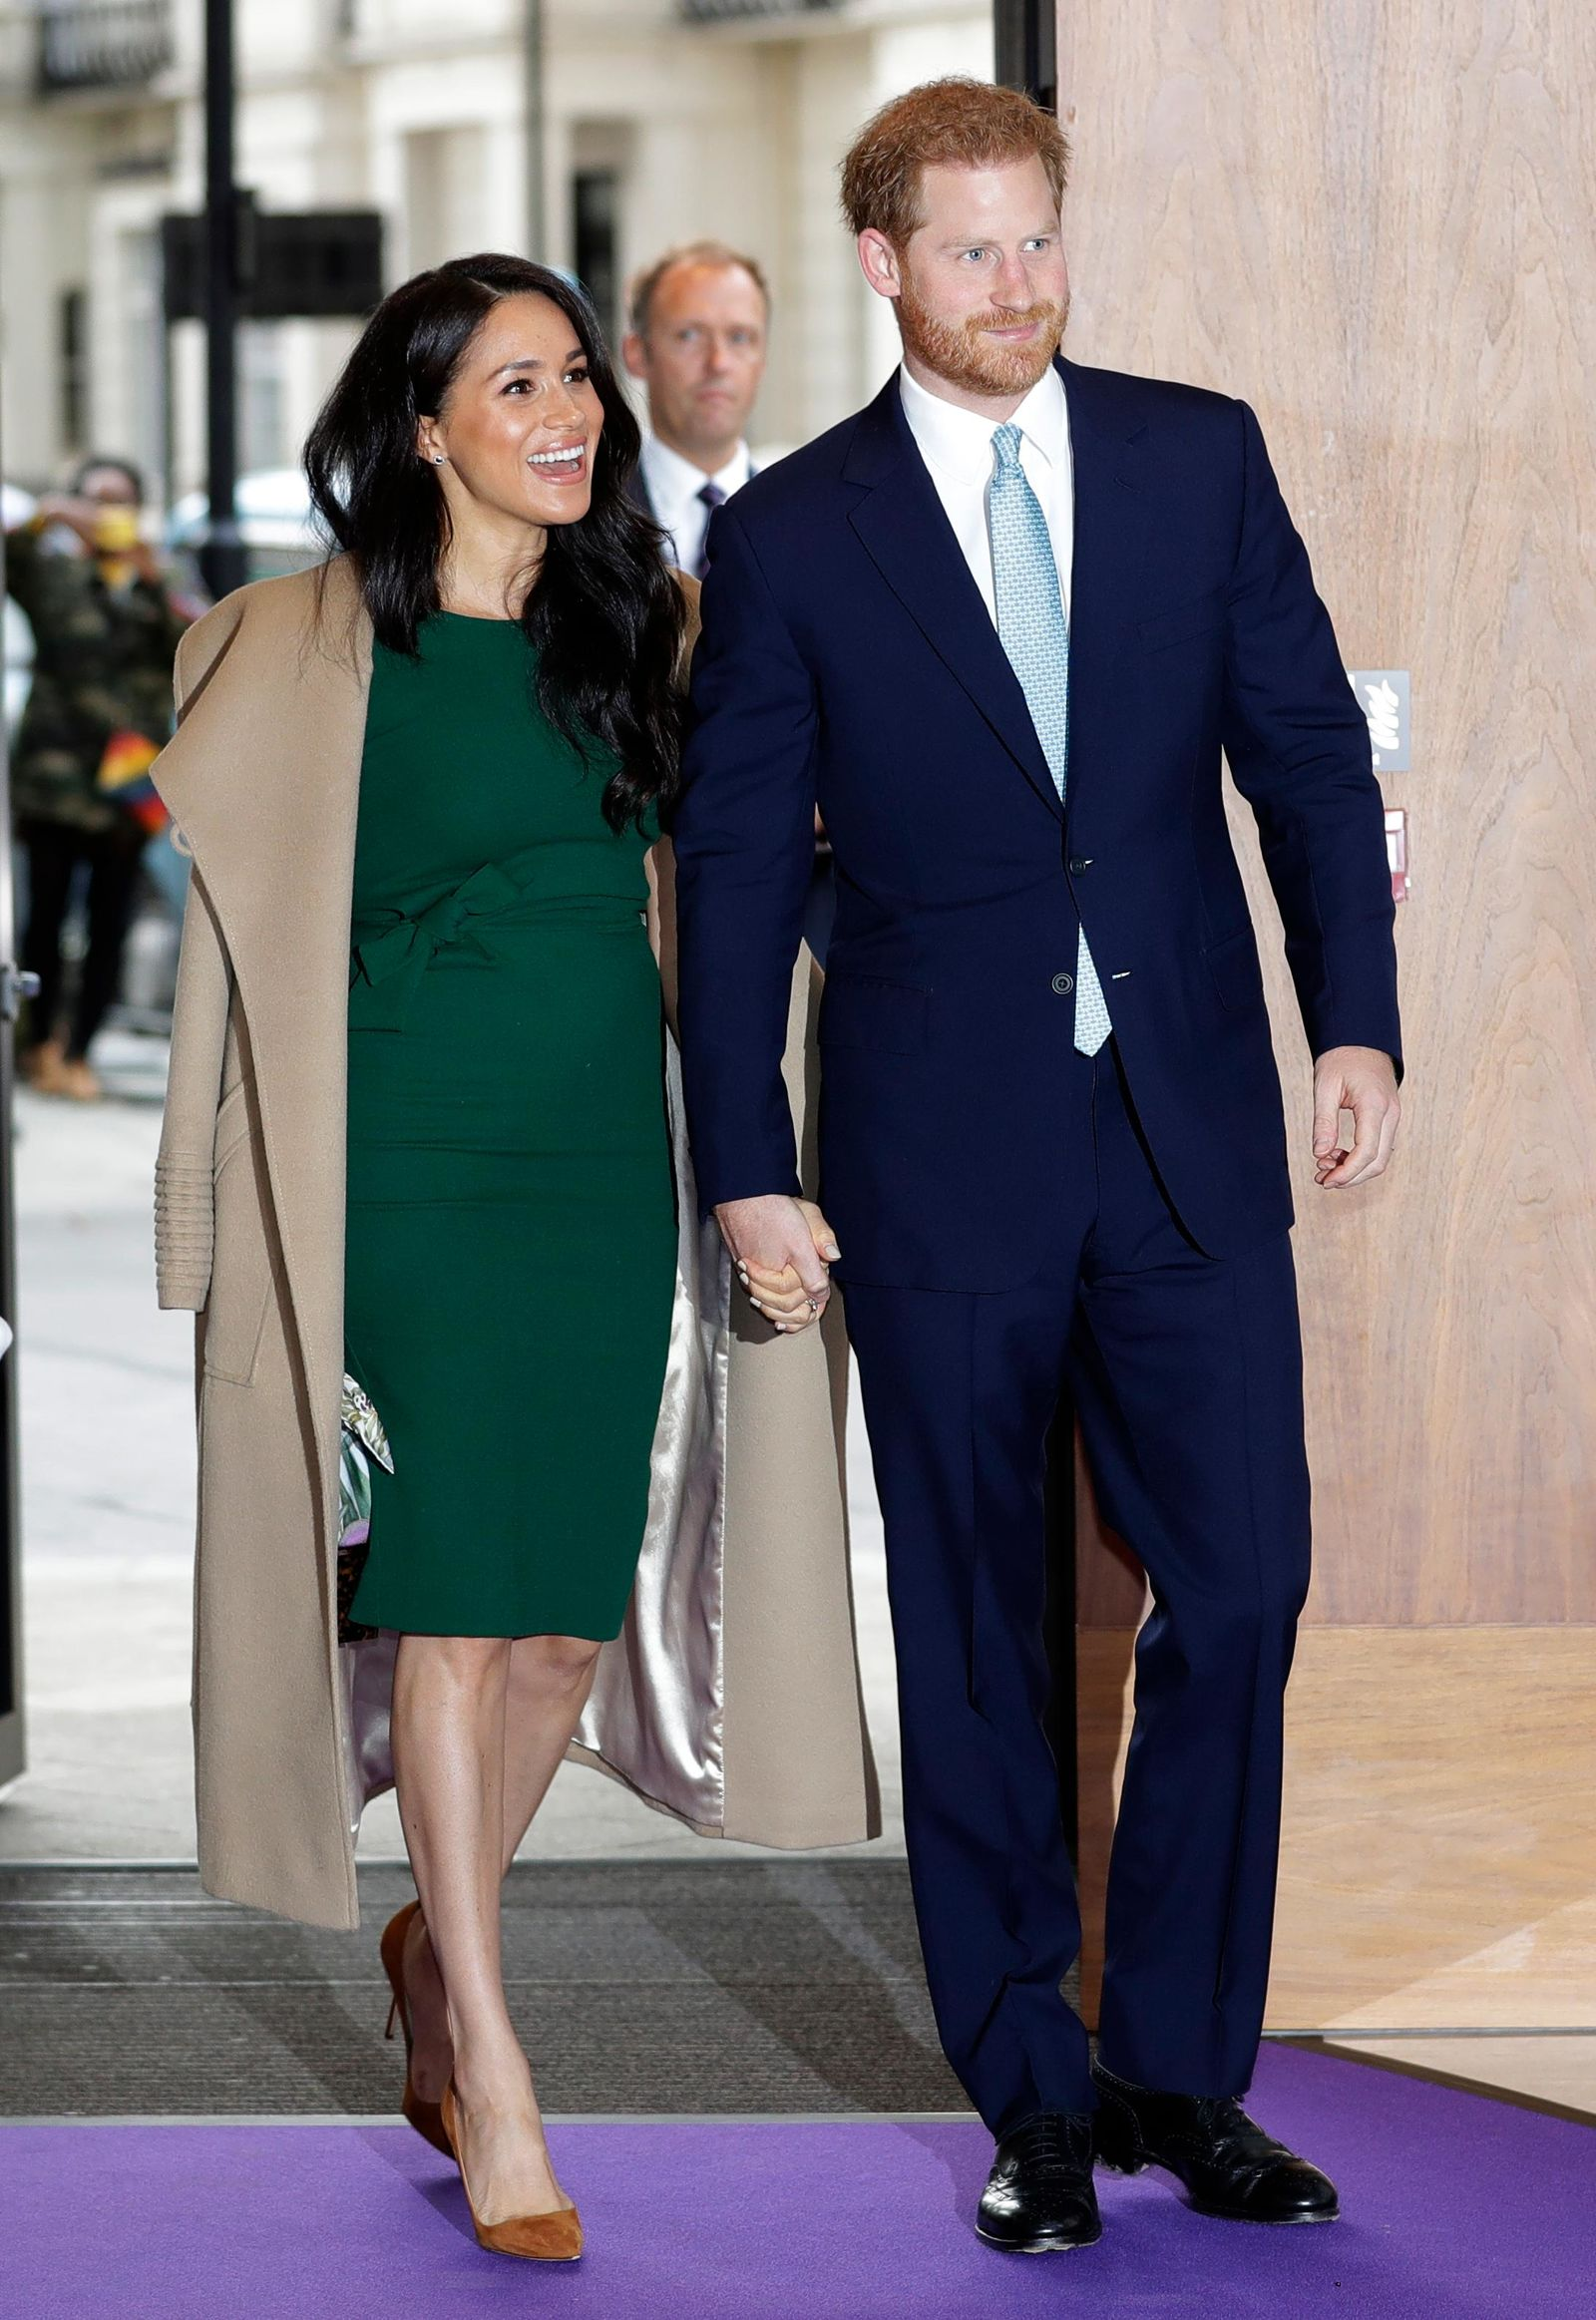 Britain's Prince Harry and Meghan, the Duke and Duchess of Sussex arrive to attend the WellChild Awards Ceremony in London, Tuesday, Oct. 15, 2019.{ } (AP Photo/Kirsty Wigglesworth)